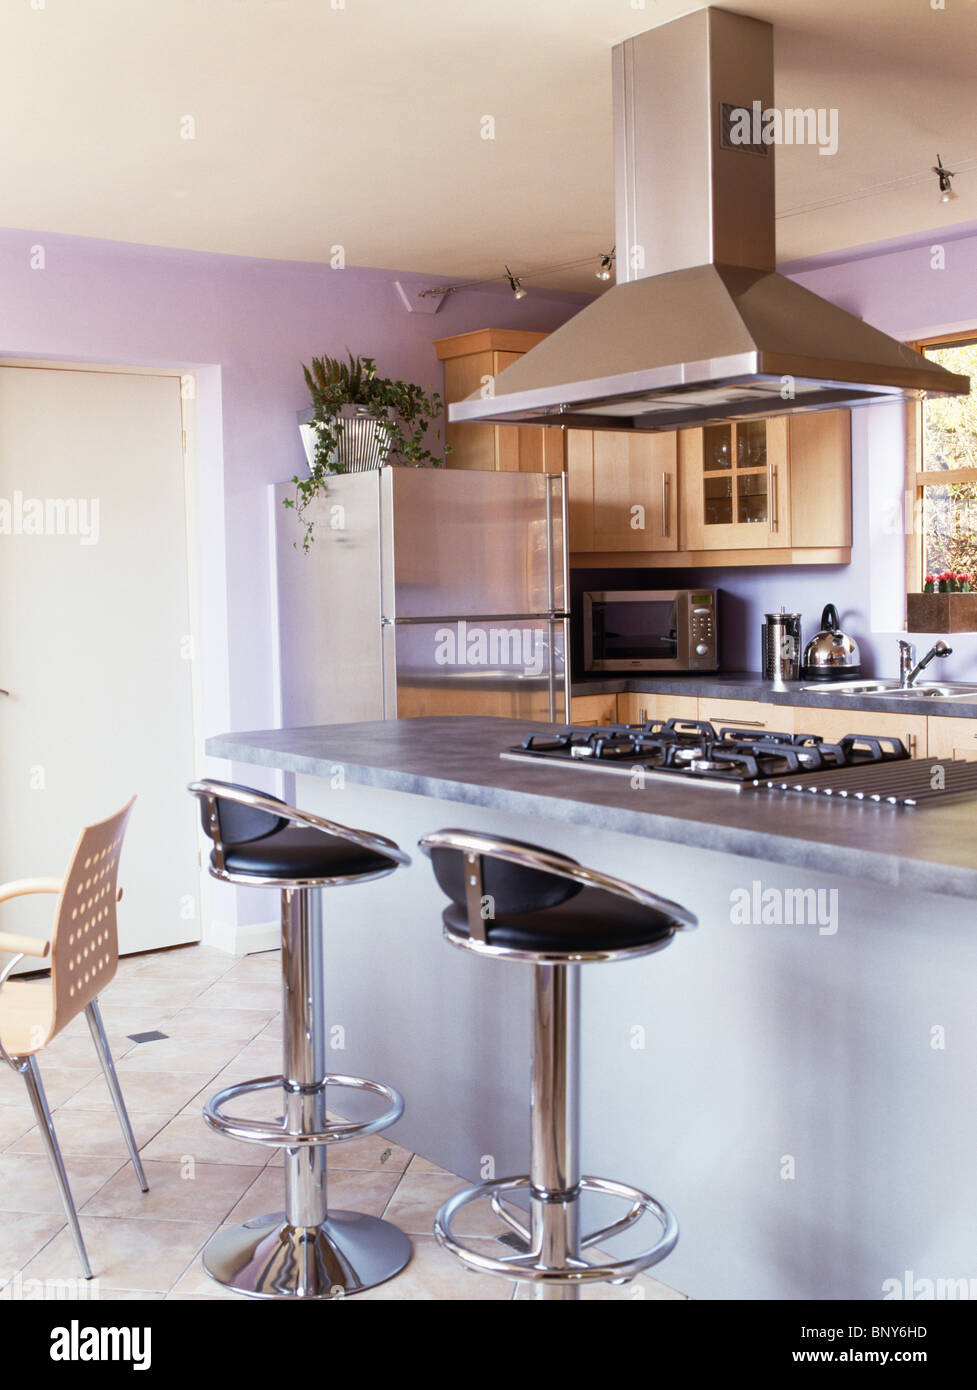 chrome and black leather stools at breakfast bar on island unit with